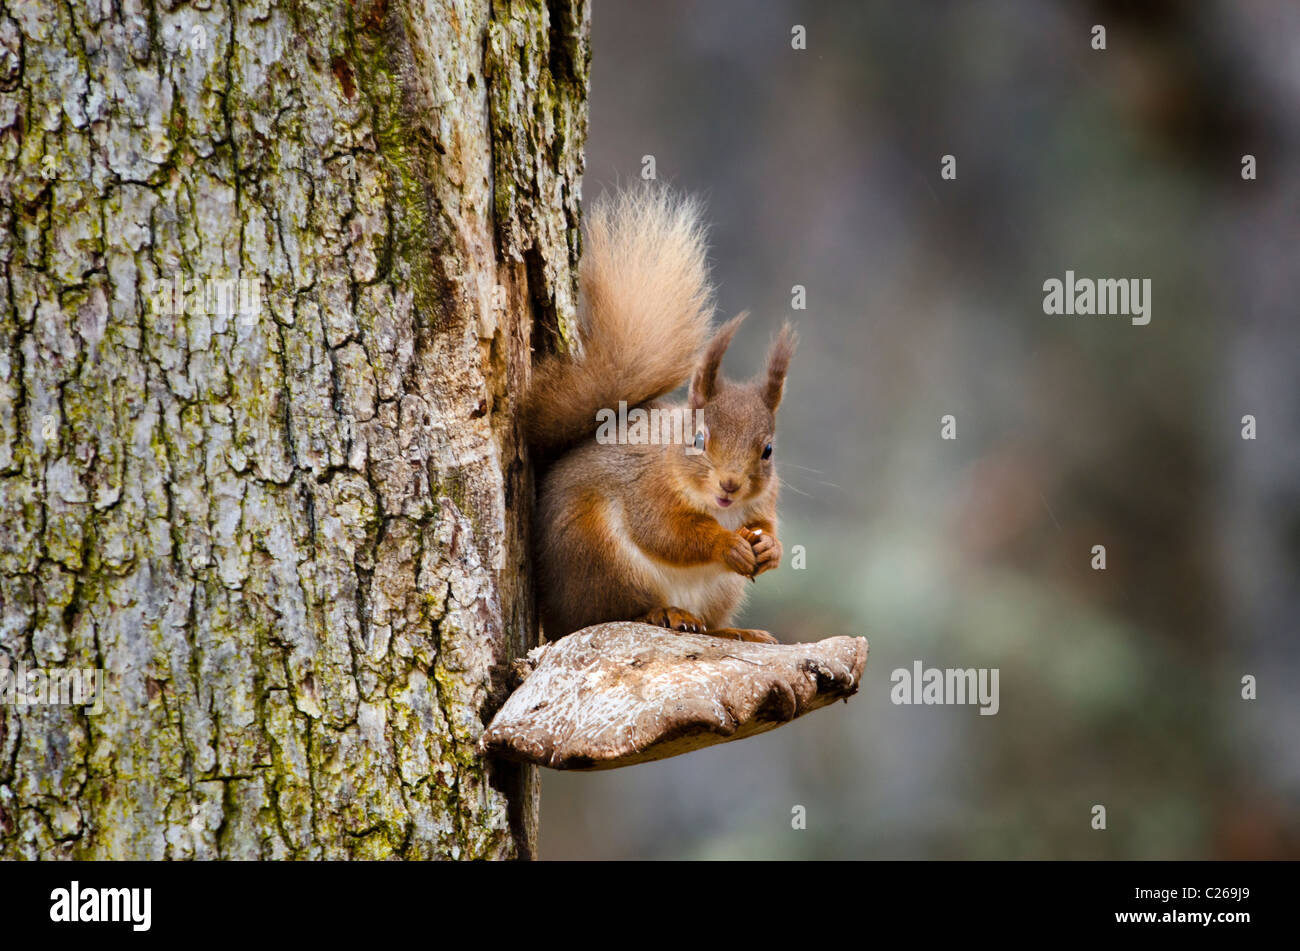 Red squirrel perched on a bracket fungus. - Stock Image